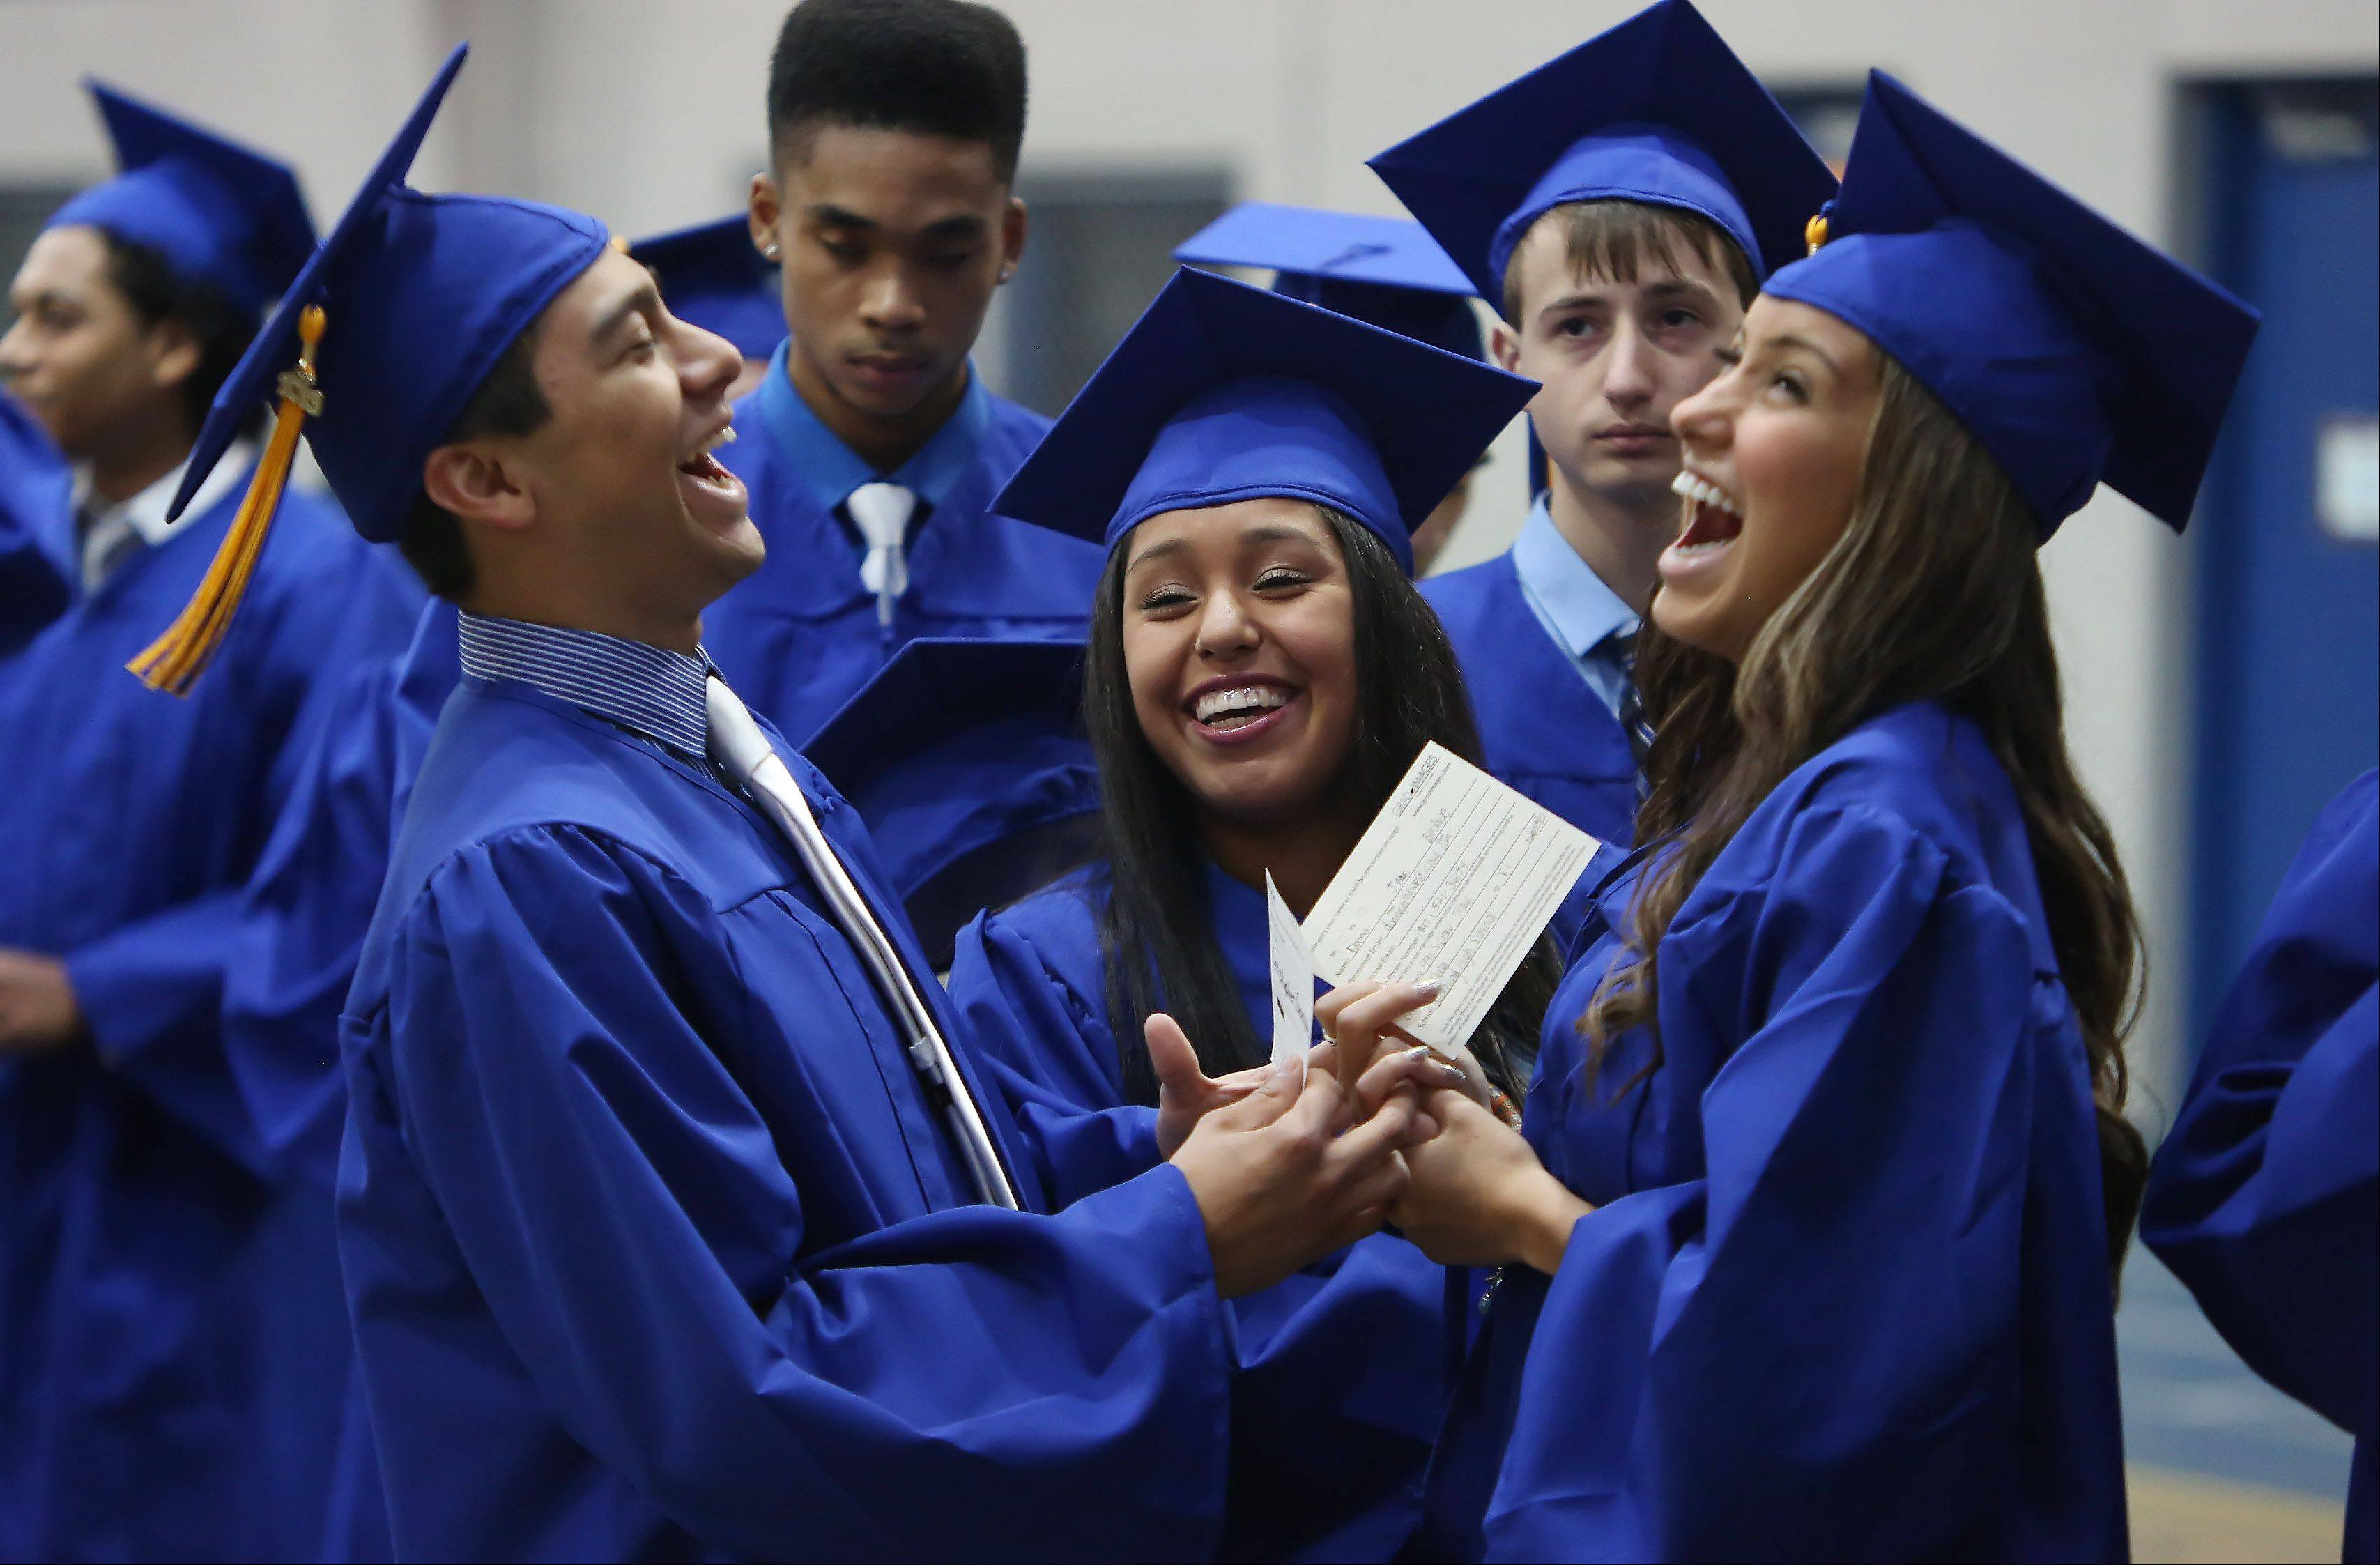 Chris Gonzalez, left, Concepcion Blancas, and Donna Bledsoe have a laugh together before the Wheeling High School graduation on Sunday, June 2nd, at the school. There were 425 graduating seniors who participated in commencement exercises